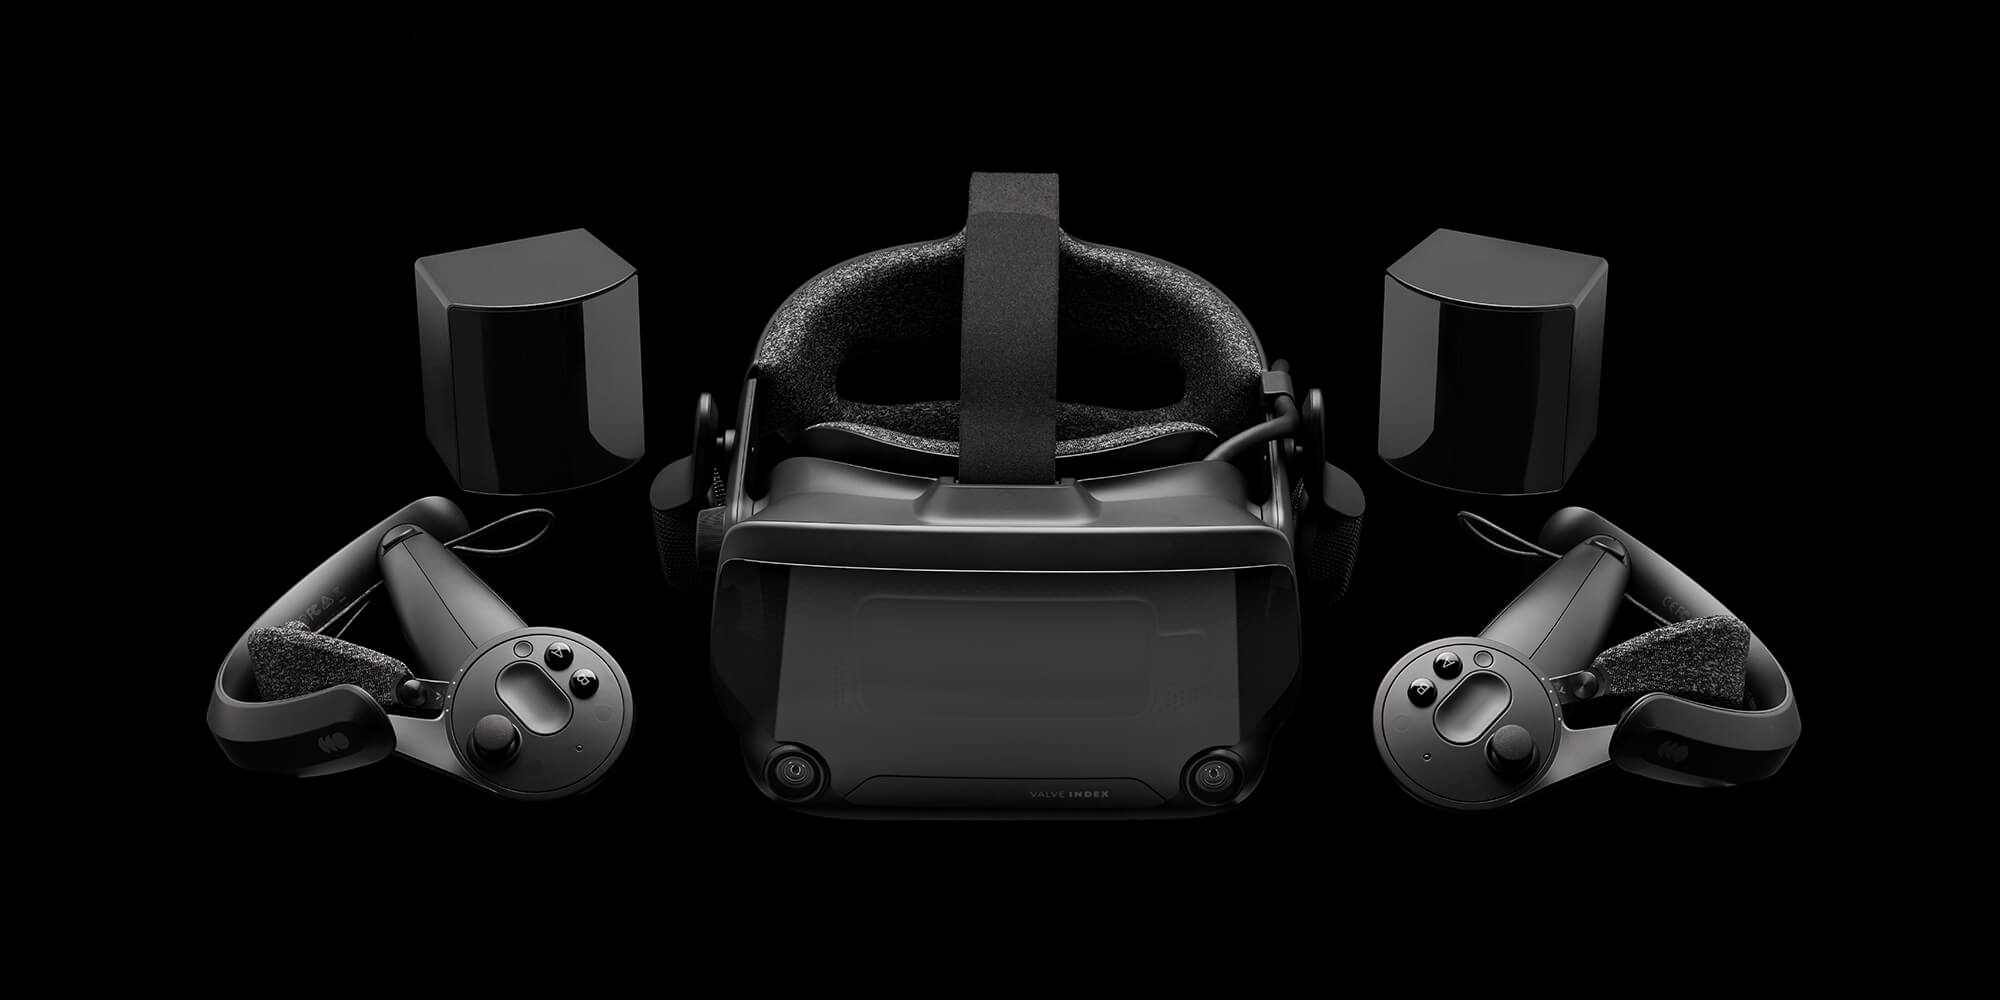 Valve Index supplies might not be enough before 'Half-Life: Alyx' launches